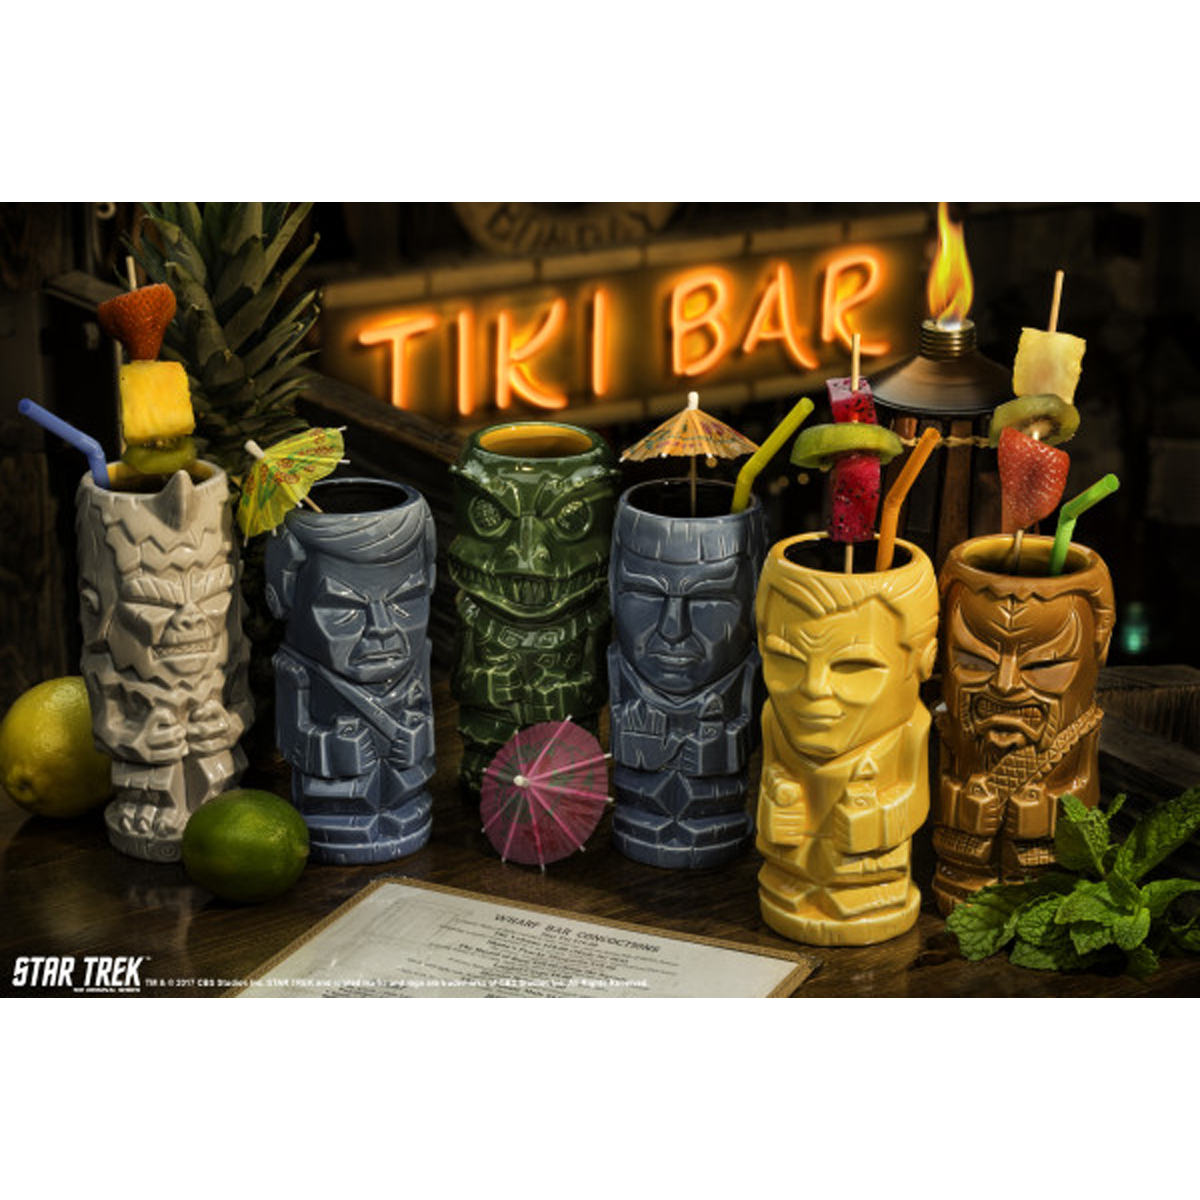 Star Trek The Original Series Dr. McCoy Geeki Tiki